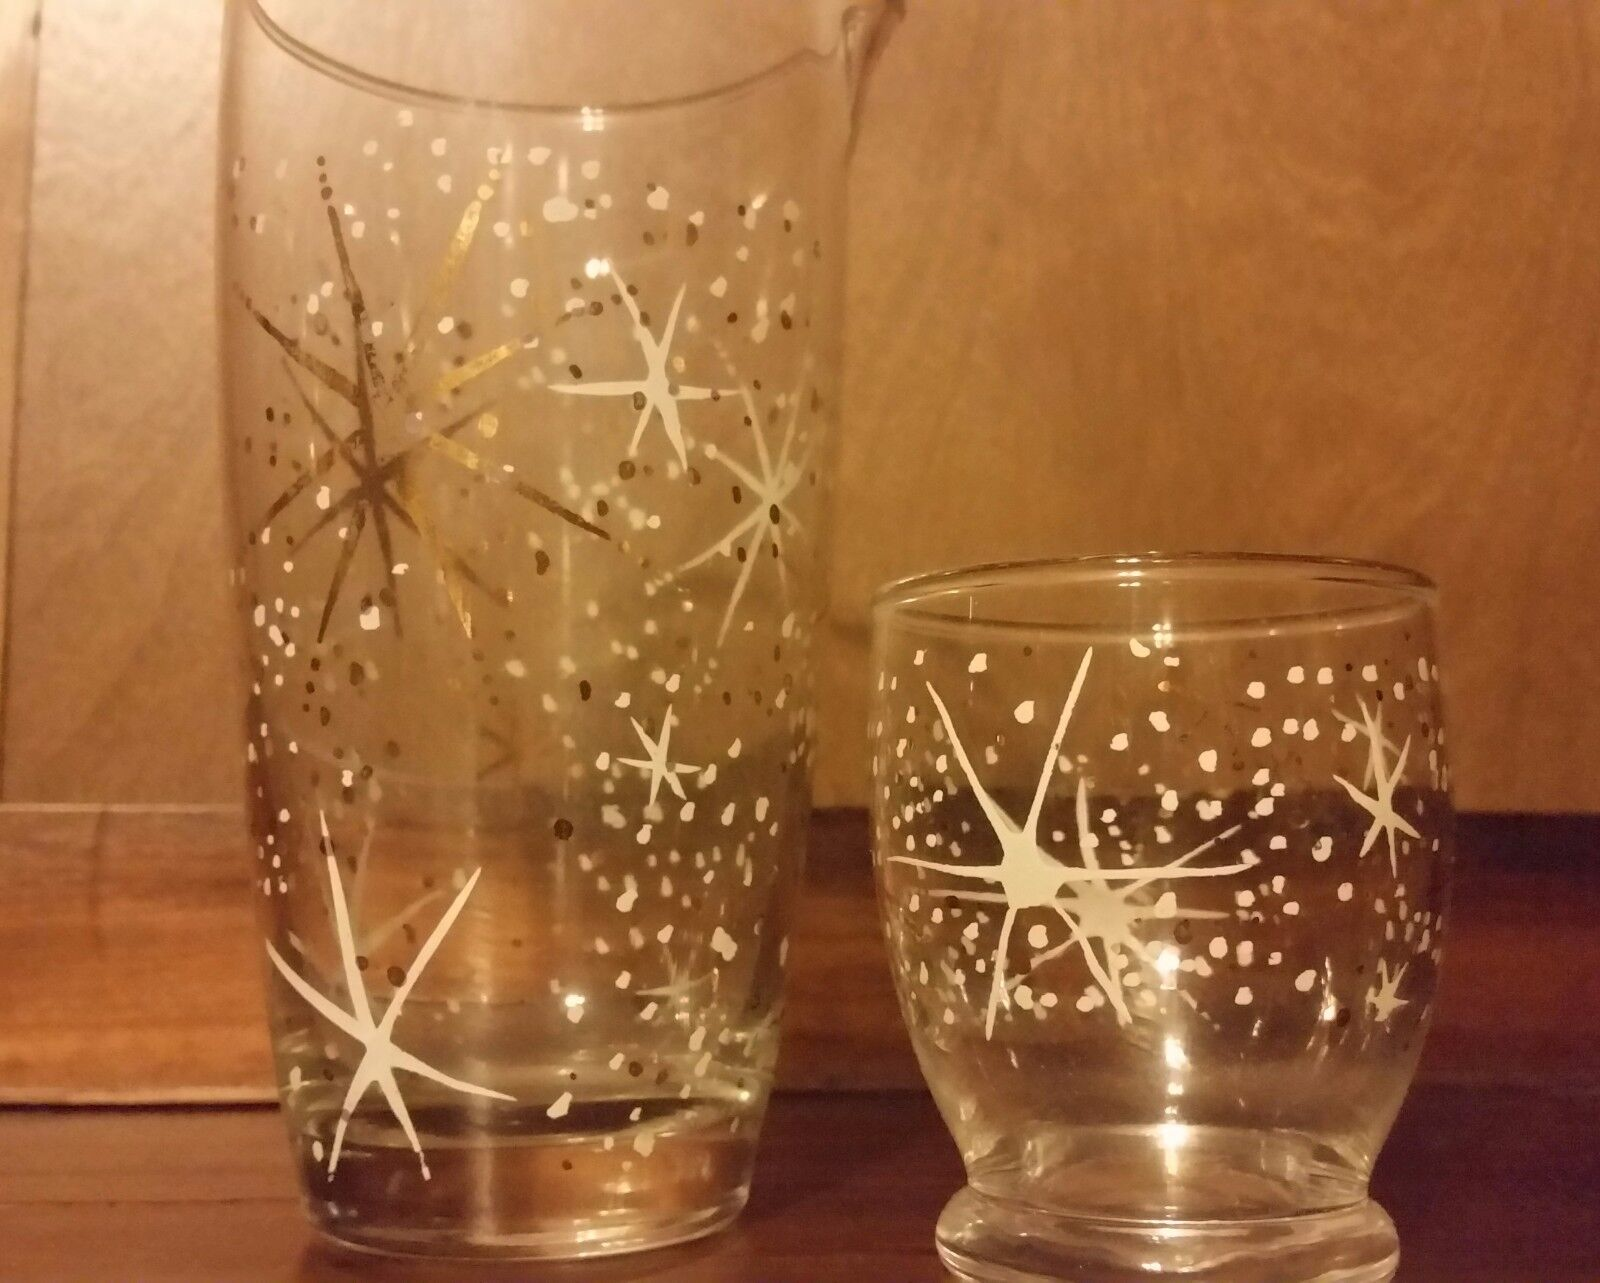 Vintage mid century atomic starburst glass martini cocktail pitcher mixer bar picclick uk - Starburst glassware ...